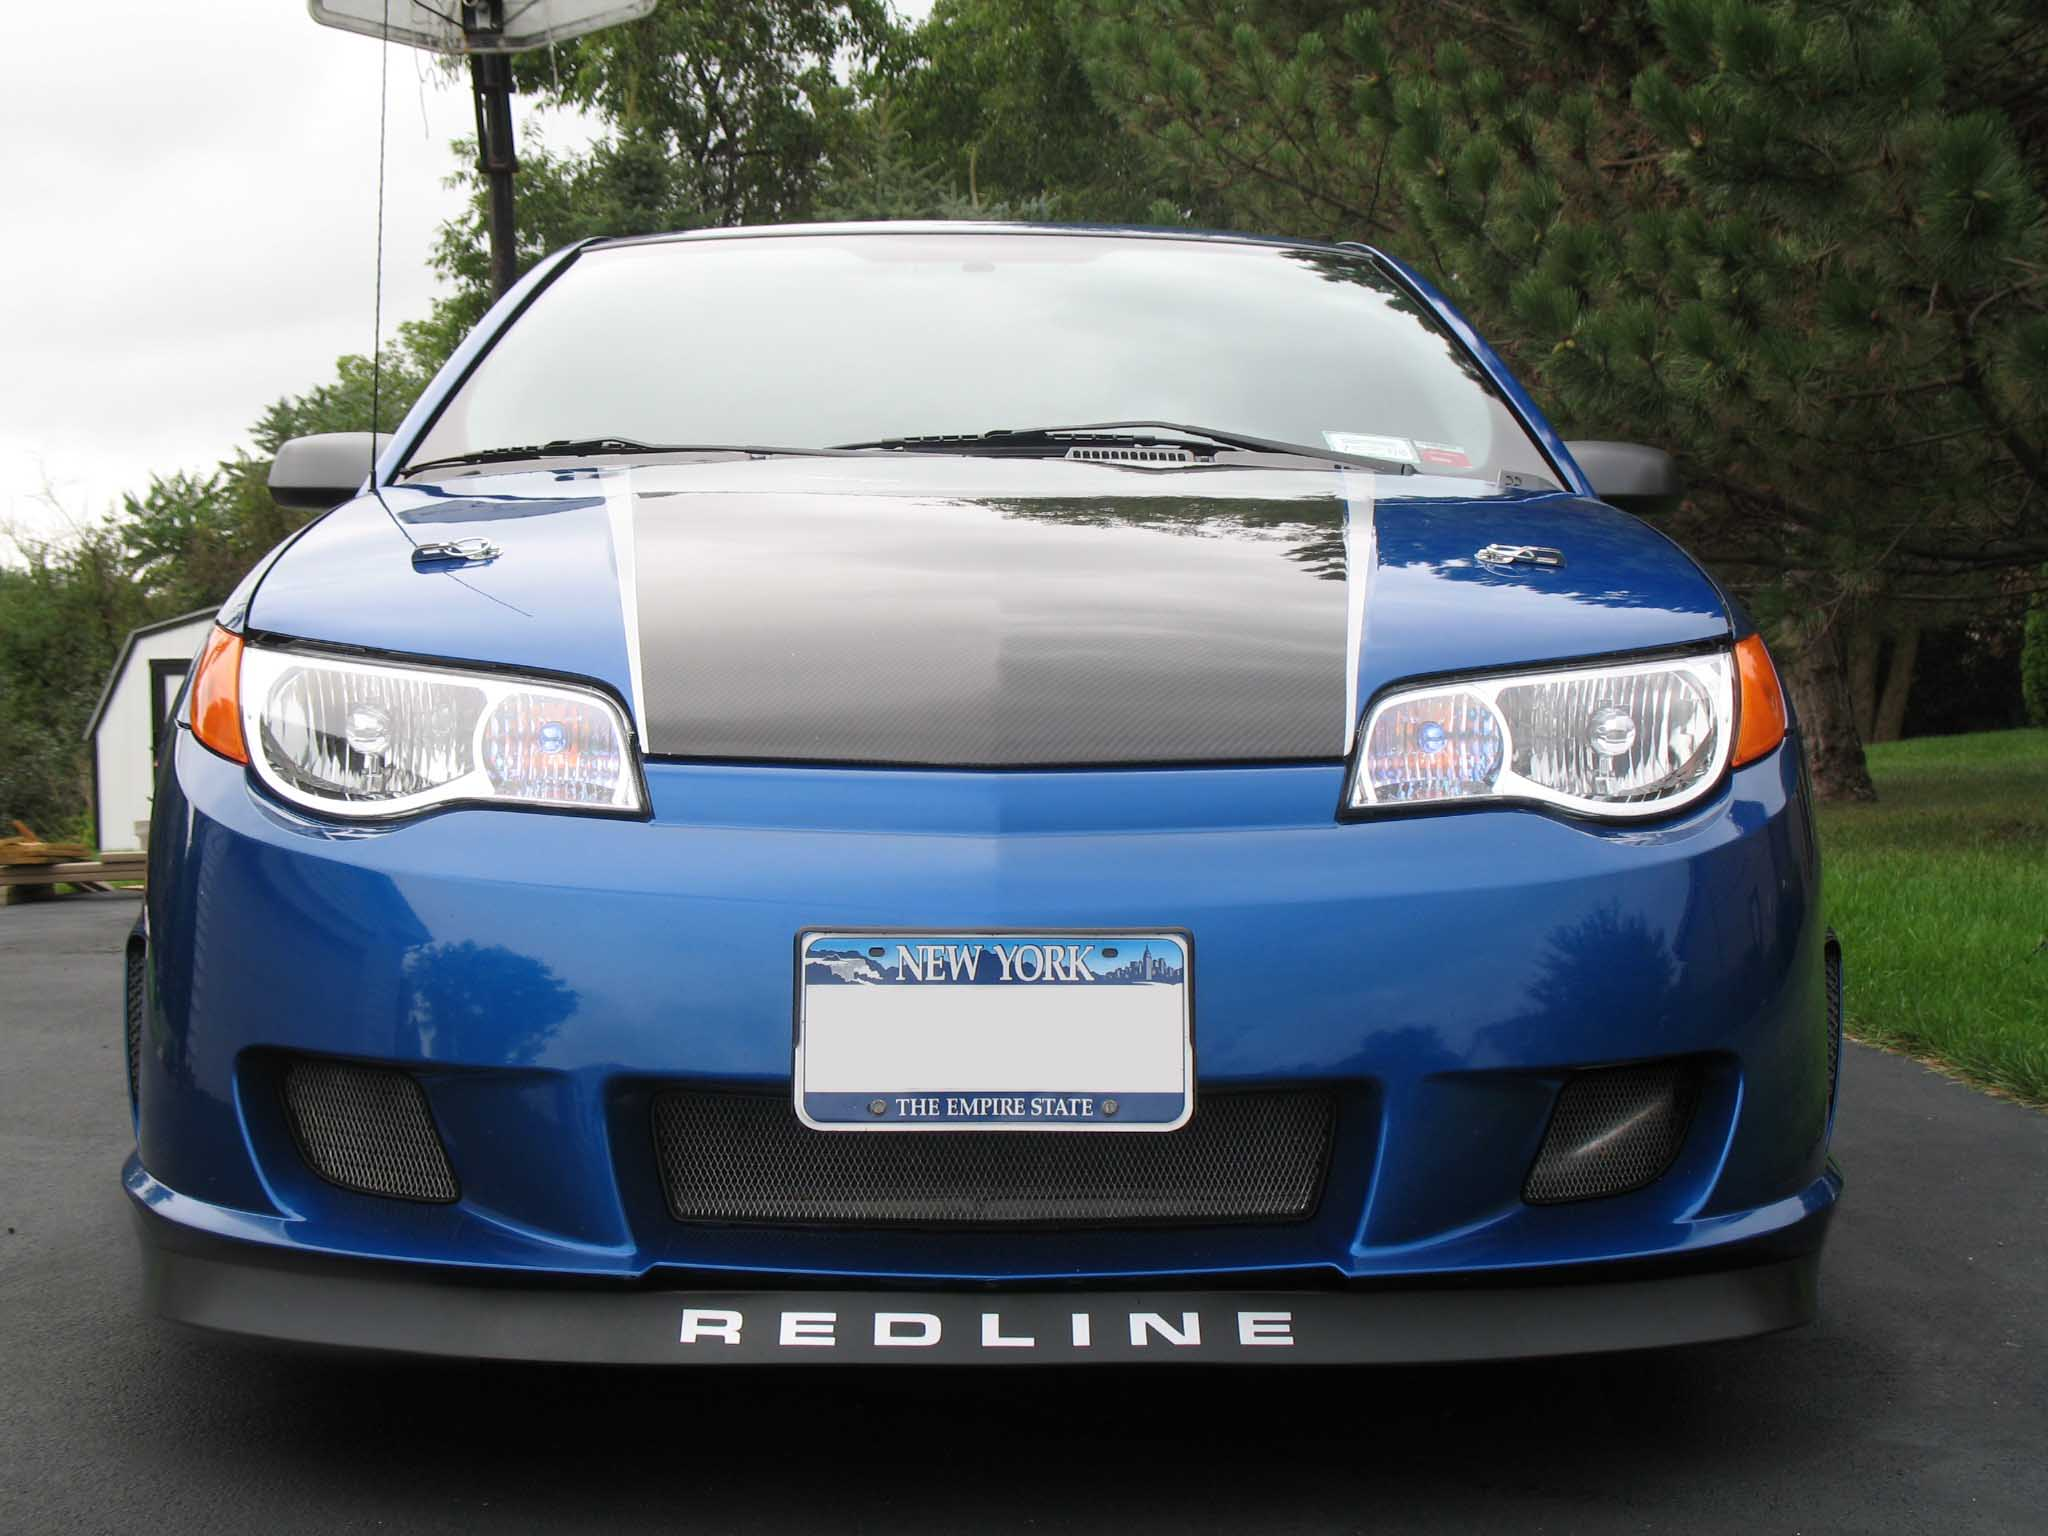 2004 modded Ion Redline For Sale in Upstate New York-rlf-front.jpg